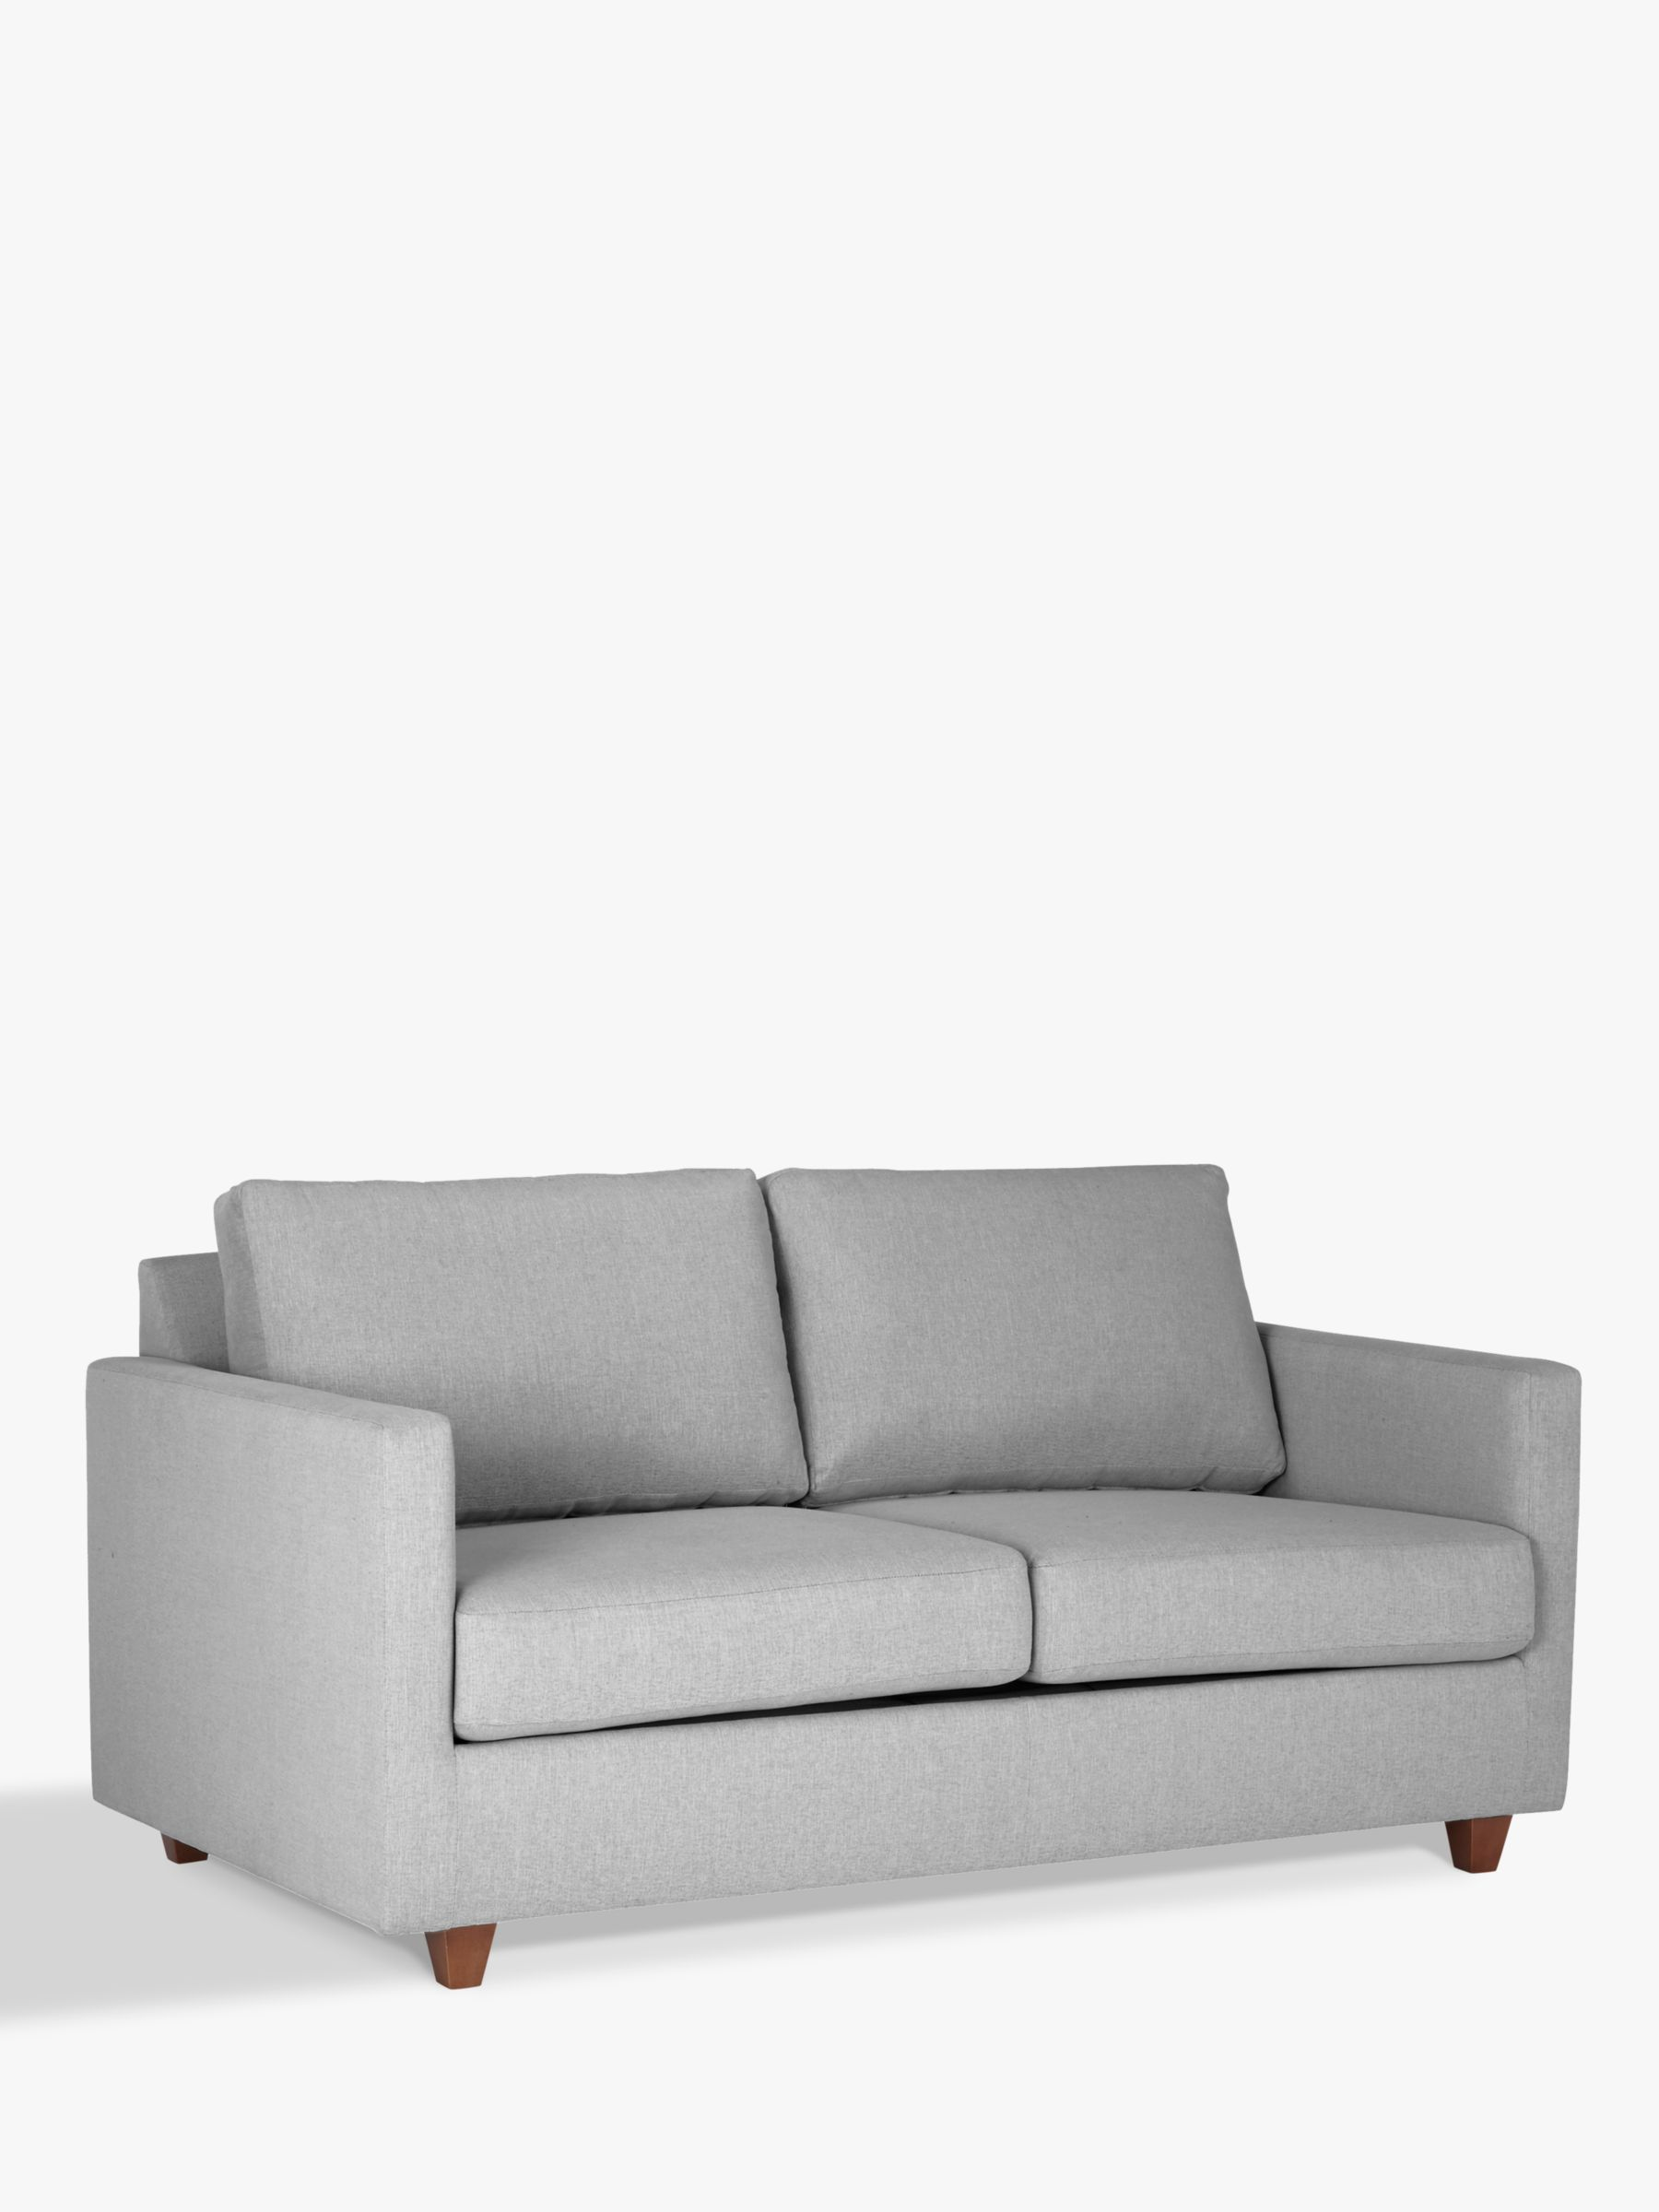 John Lewis Partners Barlow Large 3 Seater Sofa Bed With Memory